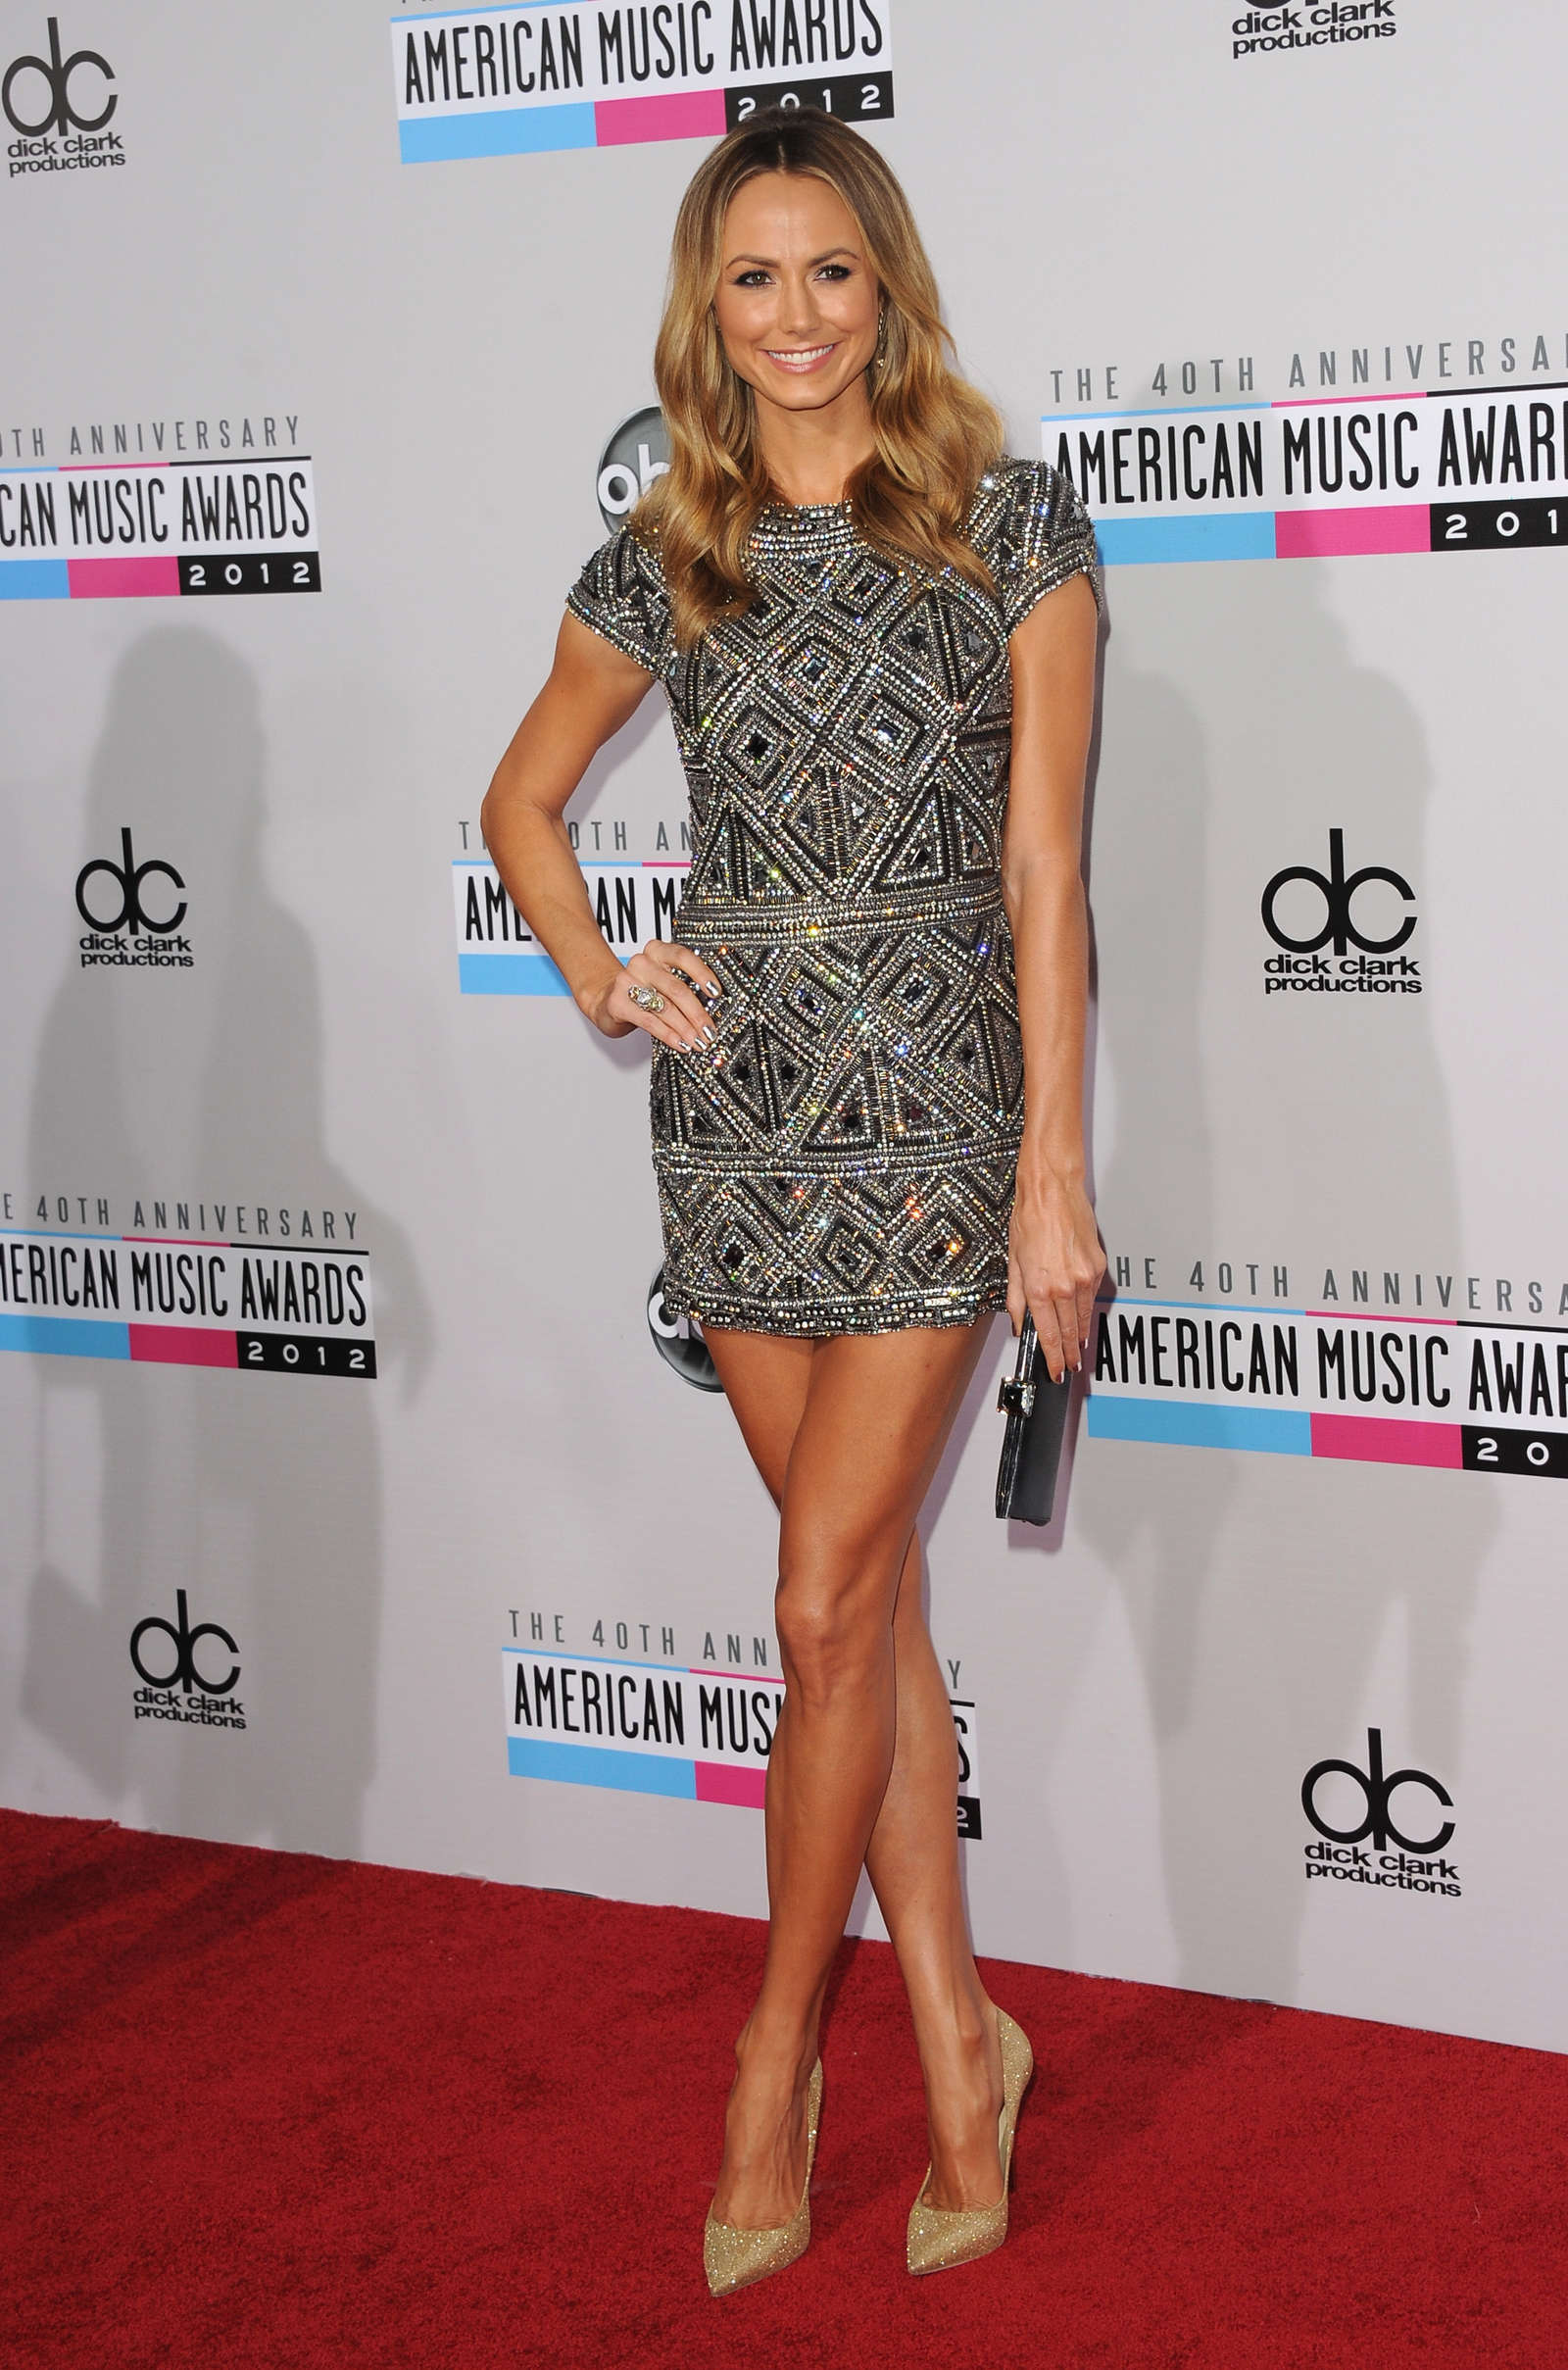 Stacy Keibler At American Music Awards 03 Gotceleb